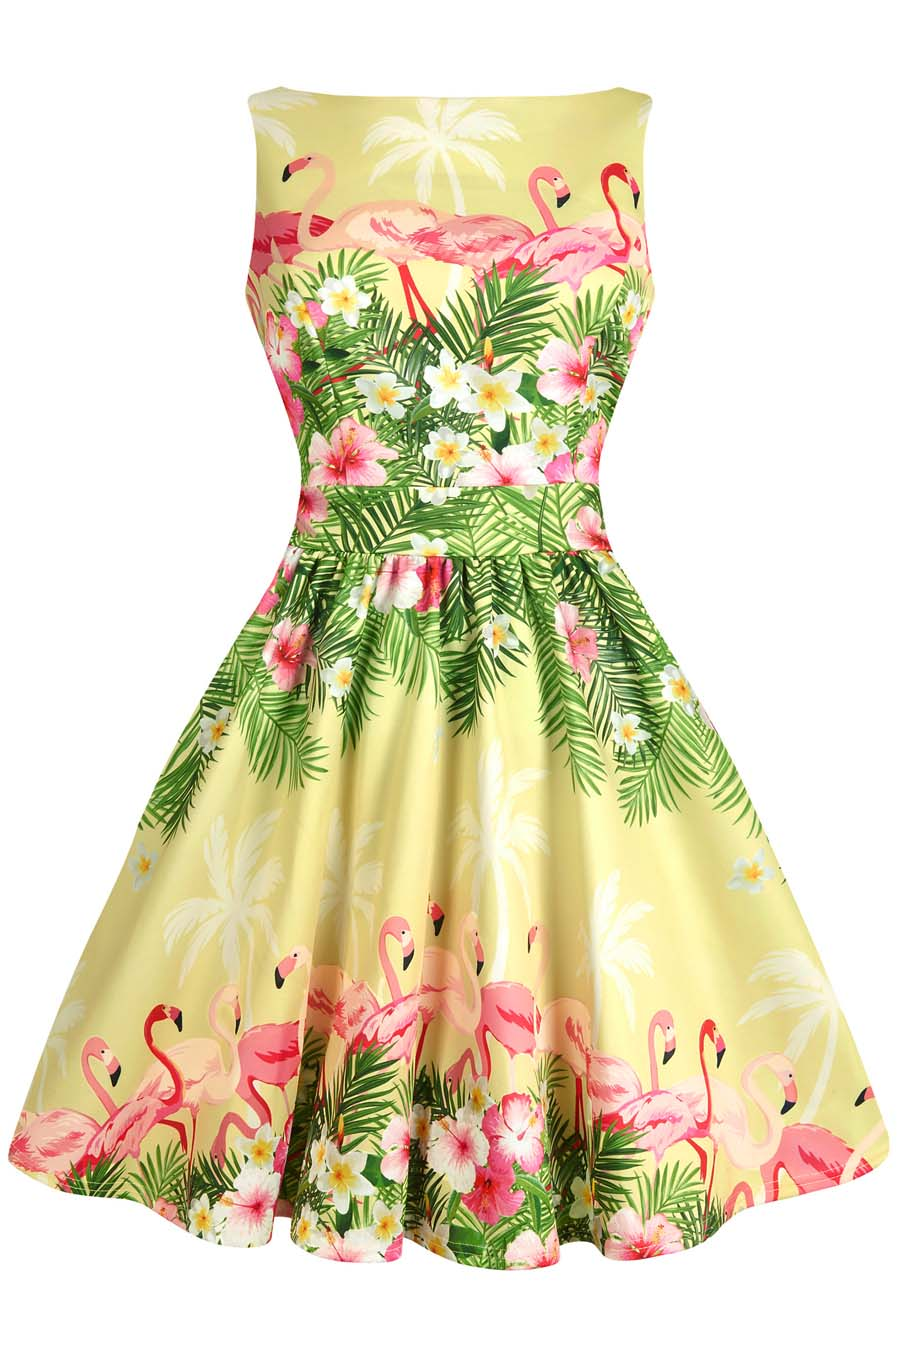 Flamingo Border Yellow Tea Dress